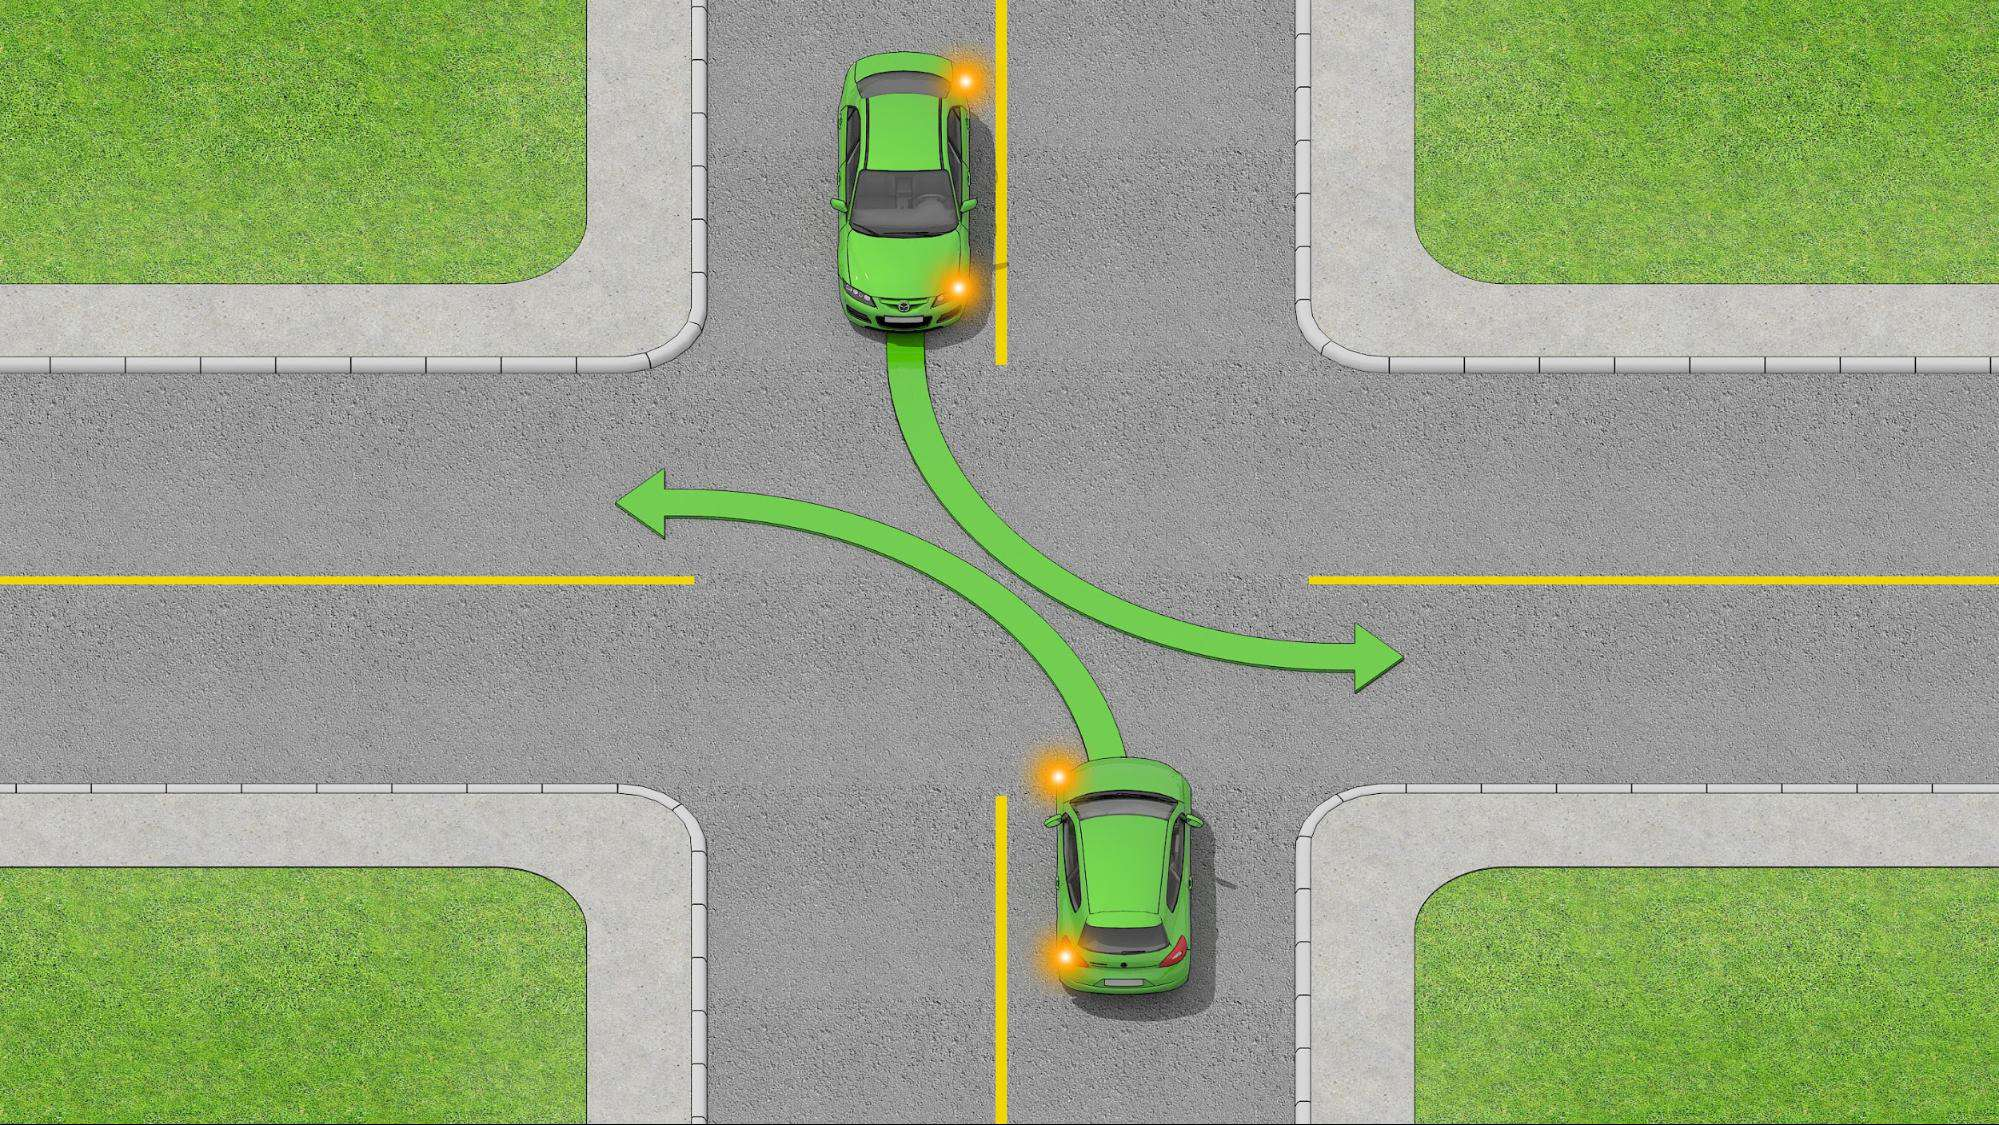 2 oncoming cars at an uncontrolled intersection